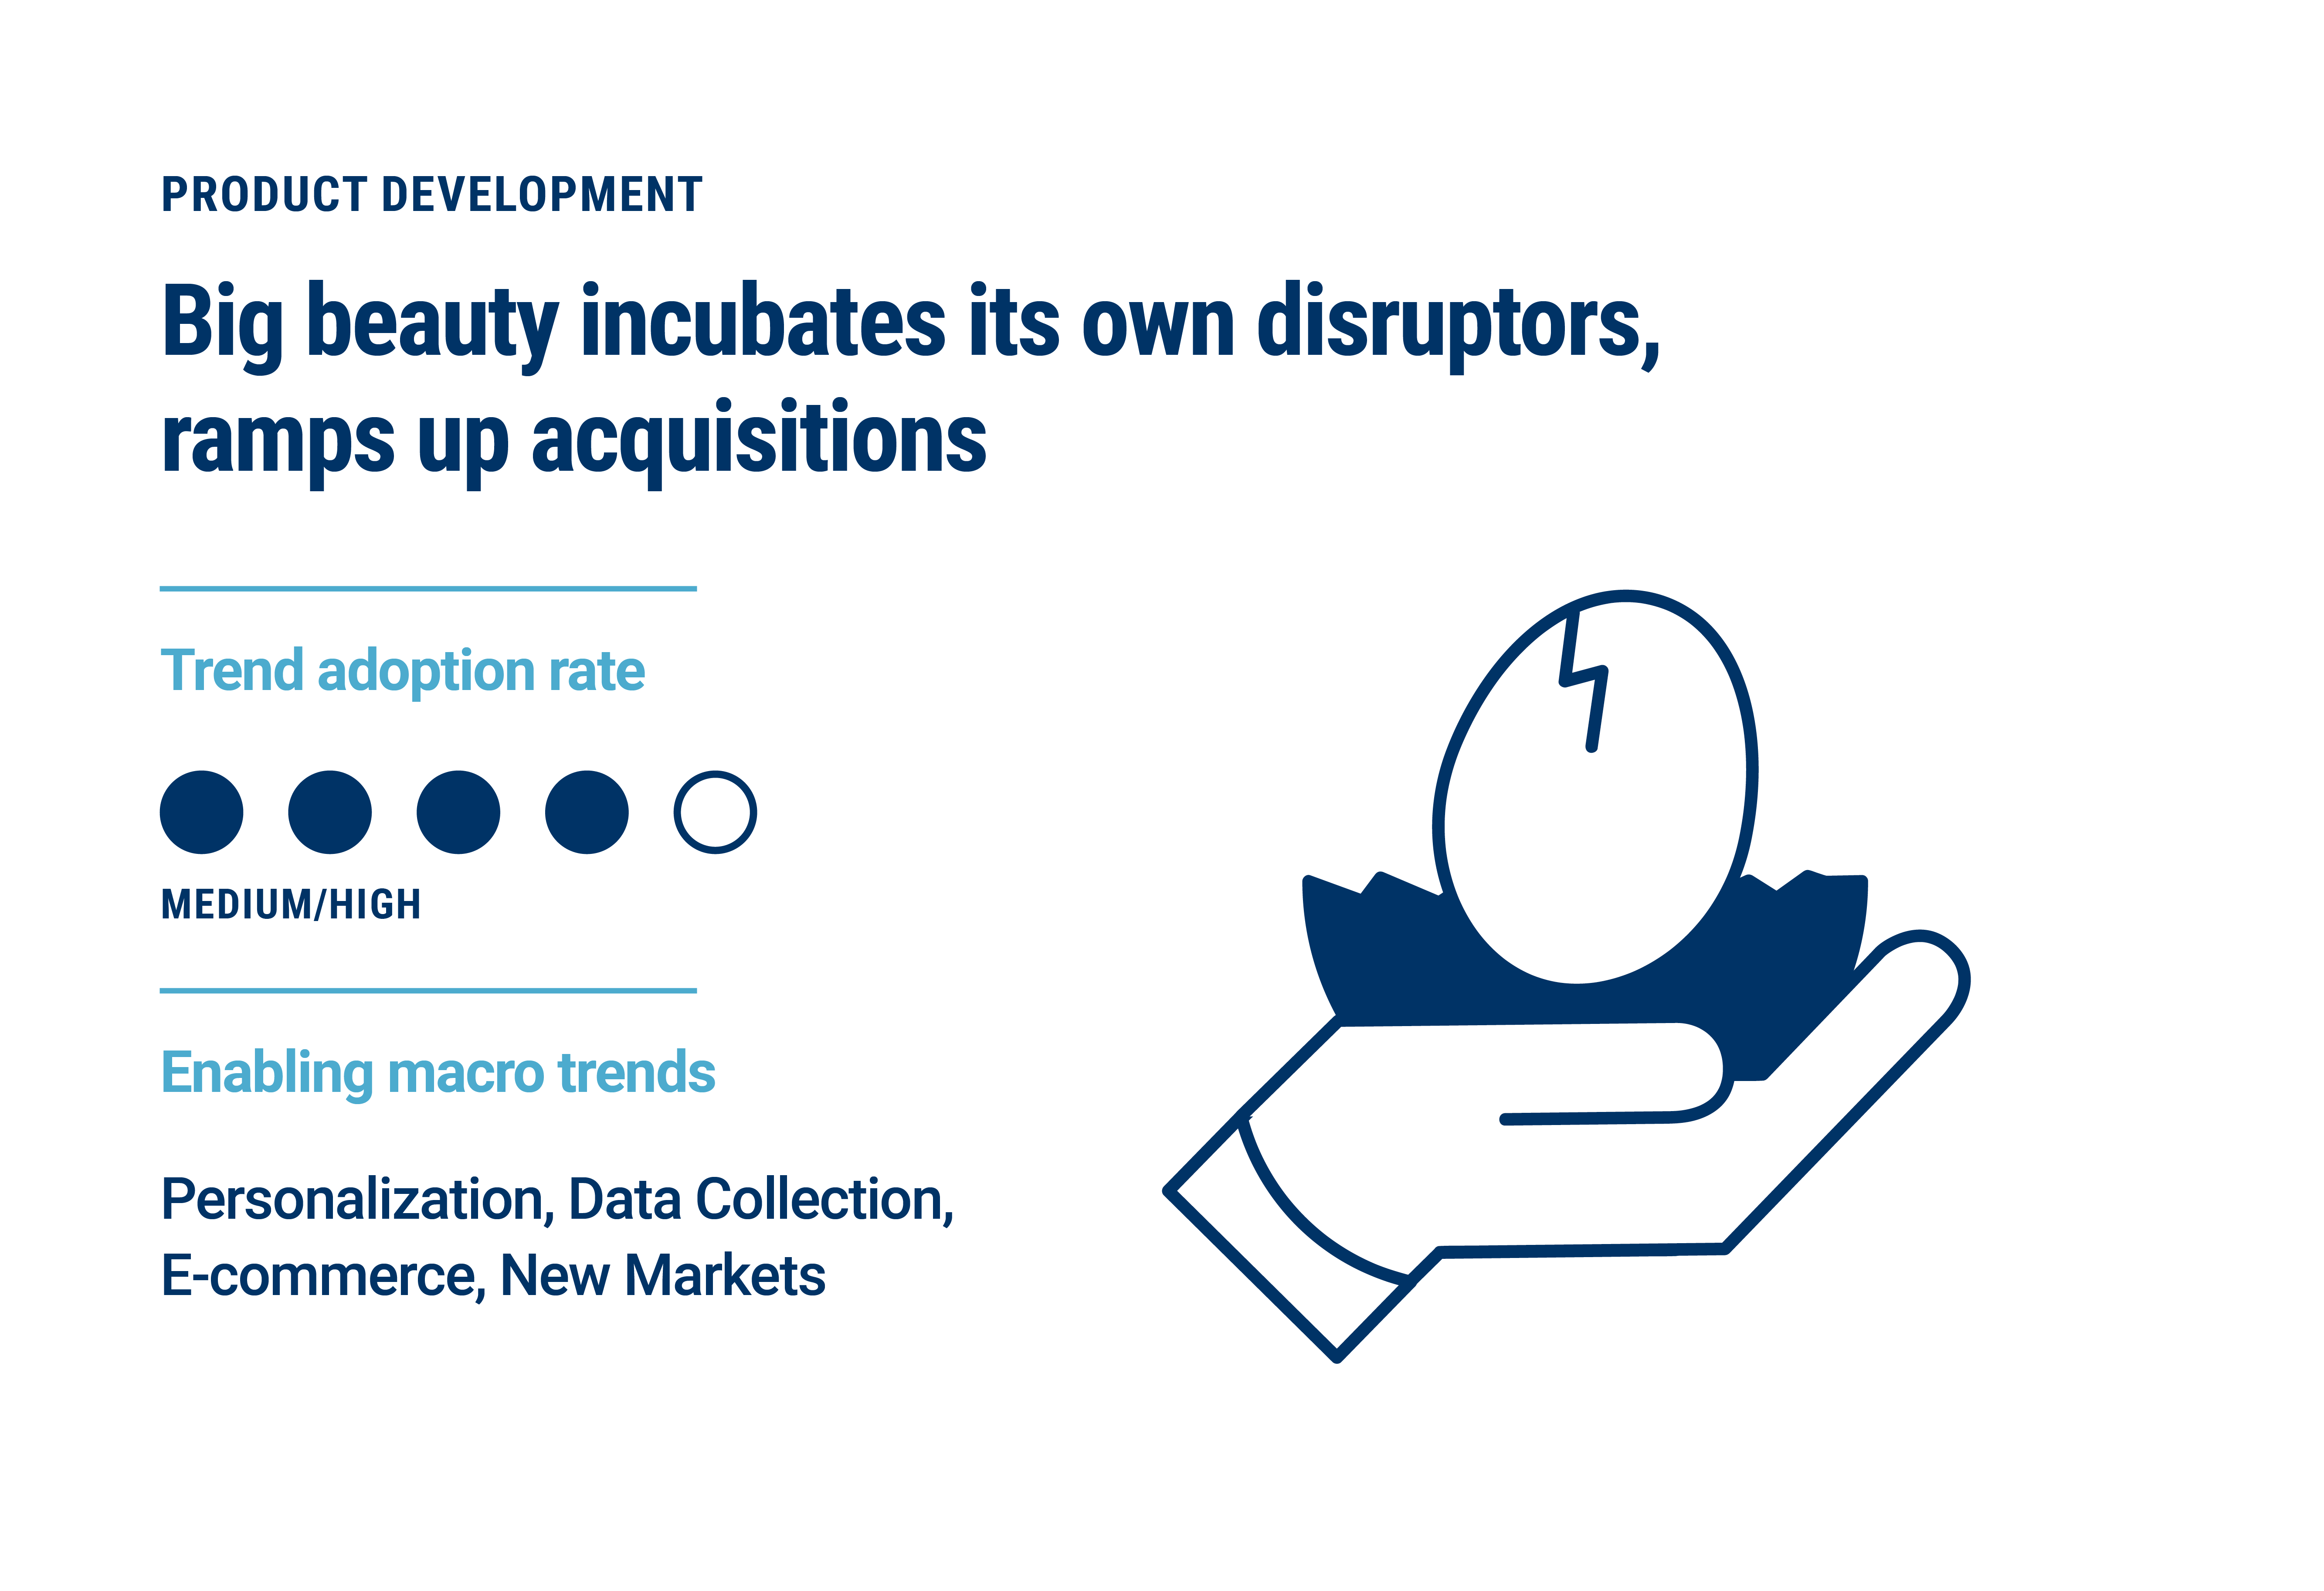 Graphic highlighting big beauty's increased focus on incubation and acquisition.